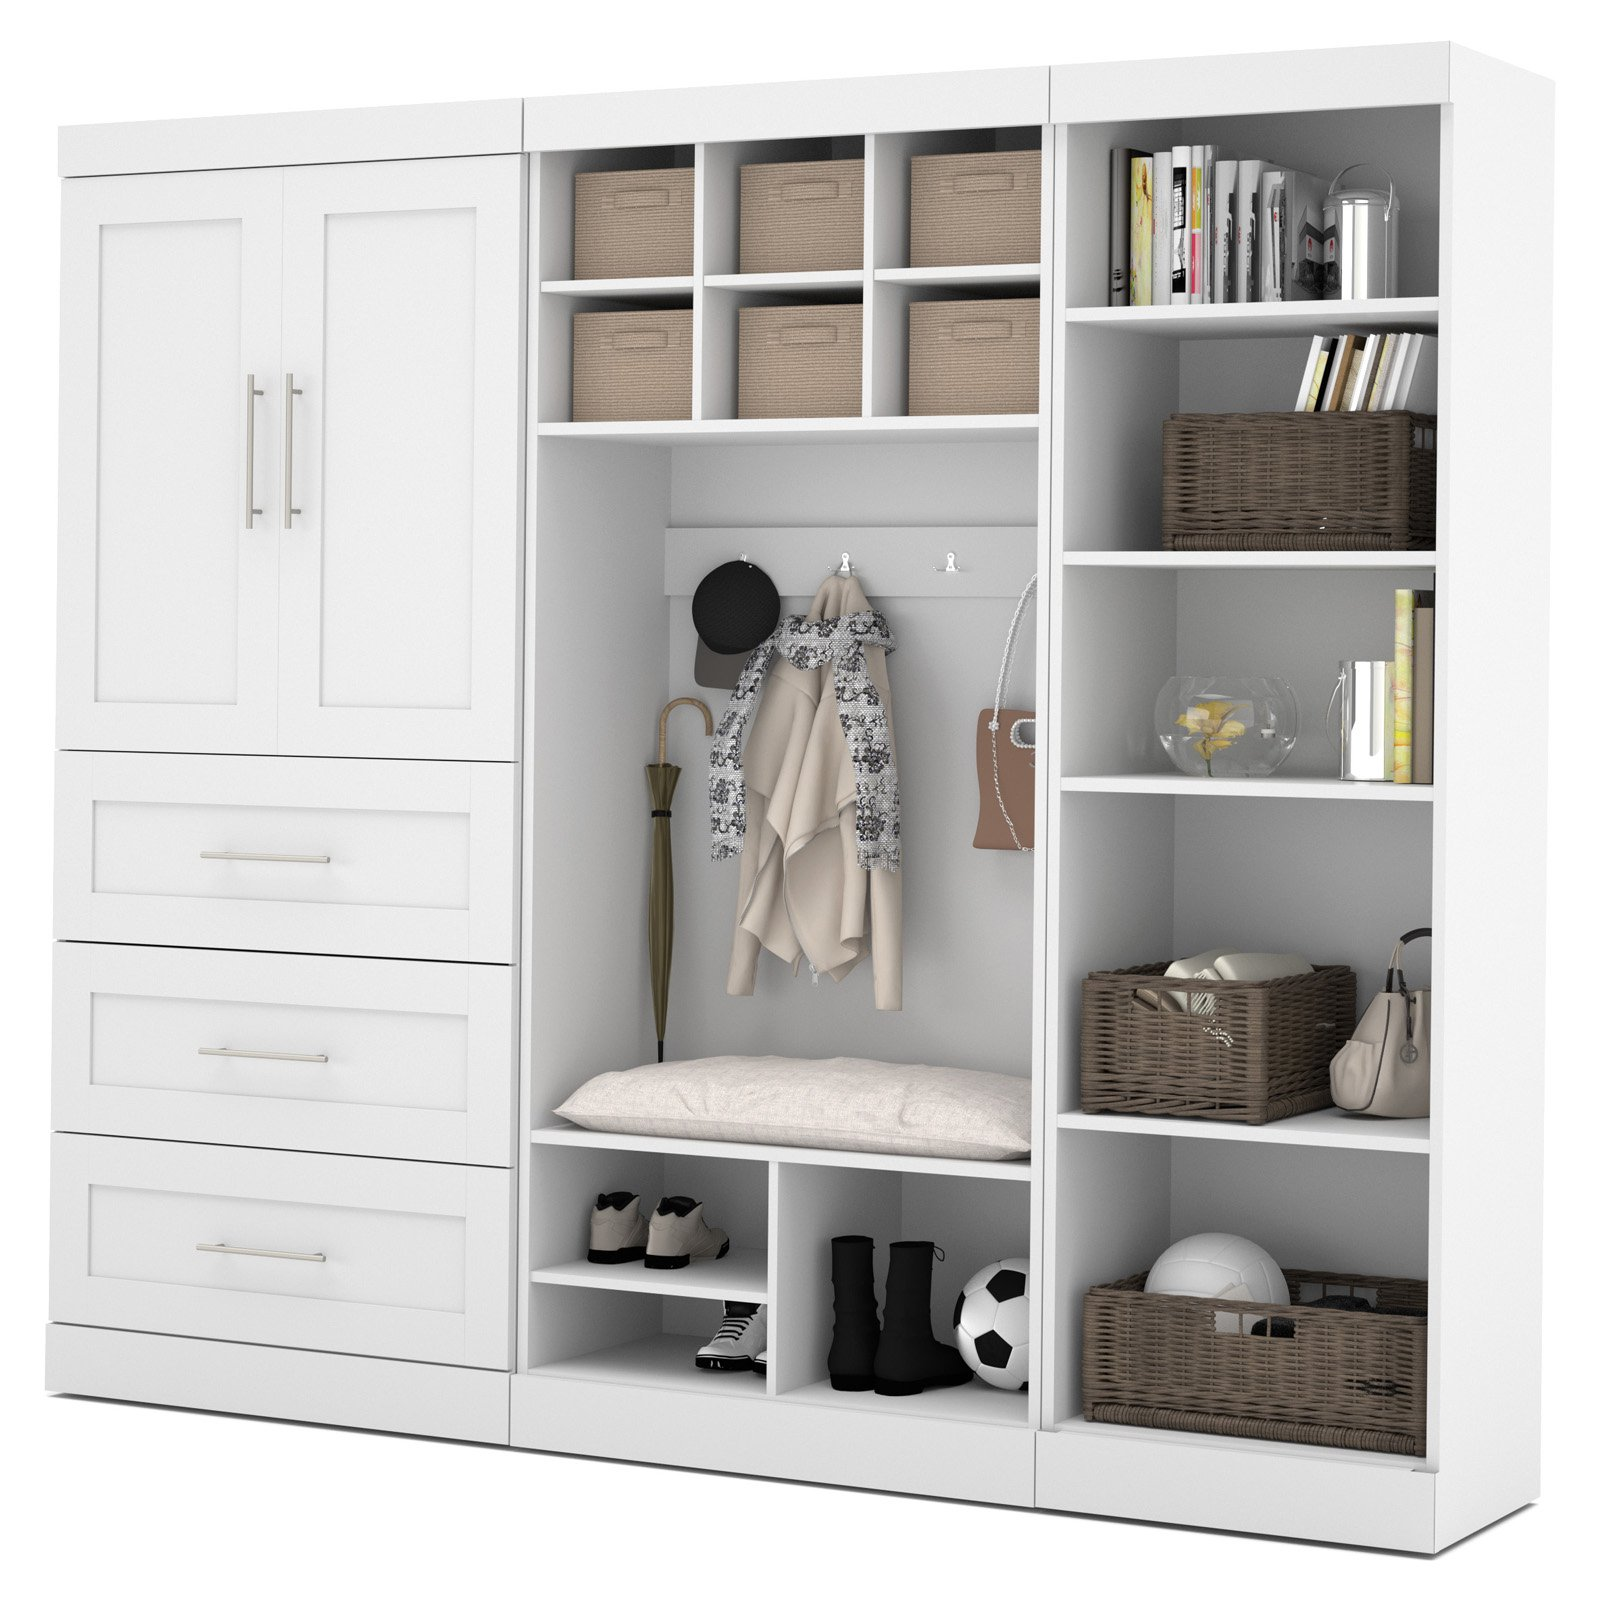 "Pur by Bestar 97"" Mudroom Storage kit in White"